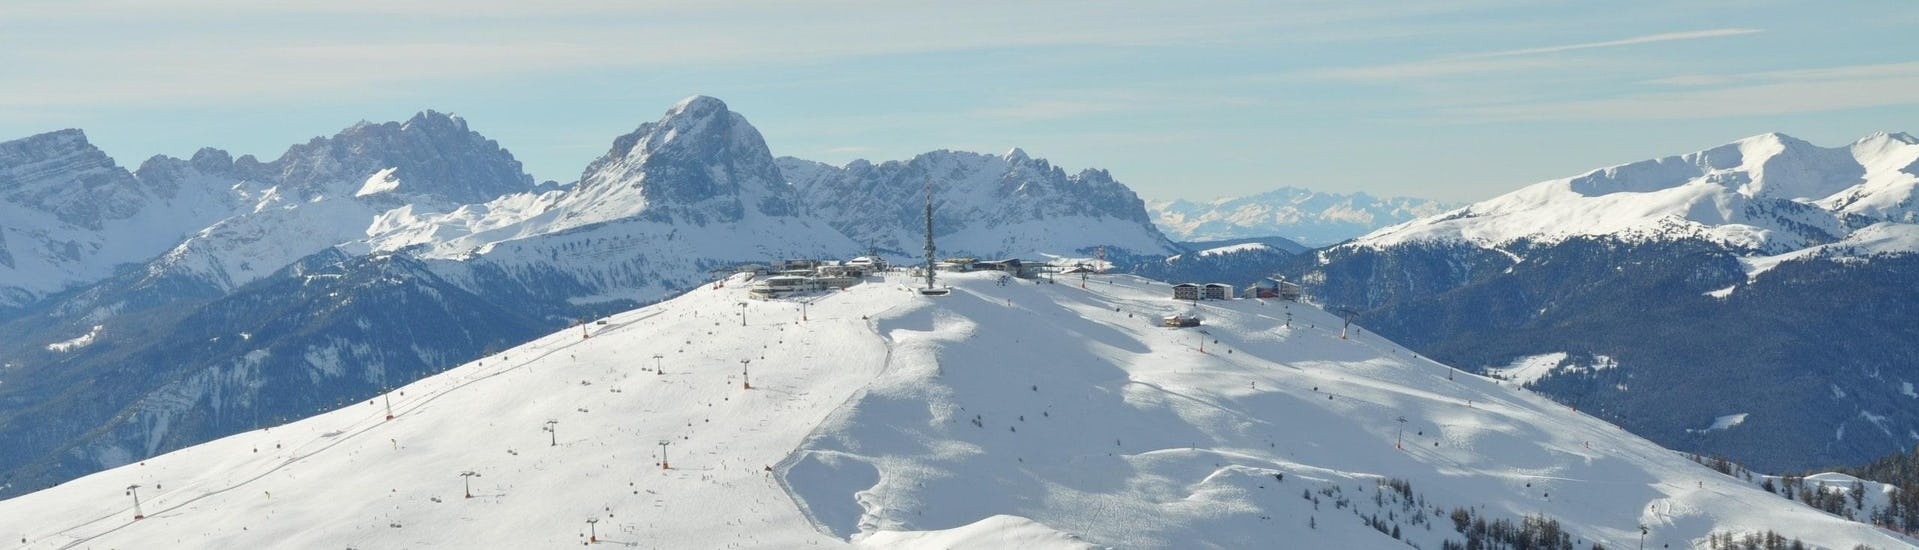 View over the sunny mountain landscape while learning to ski with the ski schools in Plan de Corones.